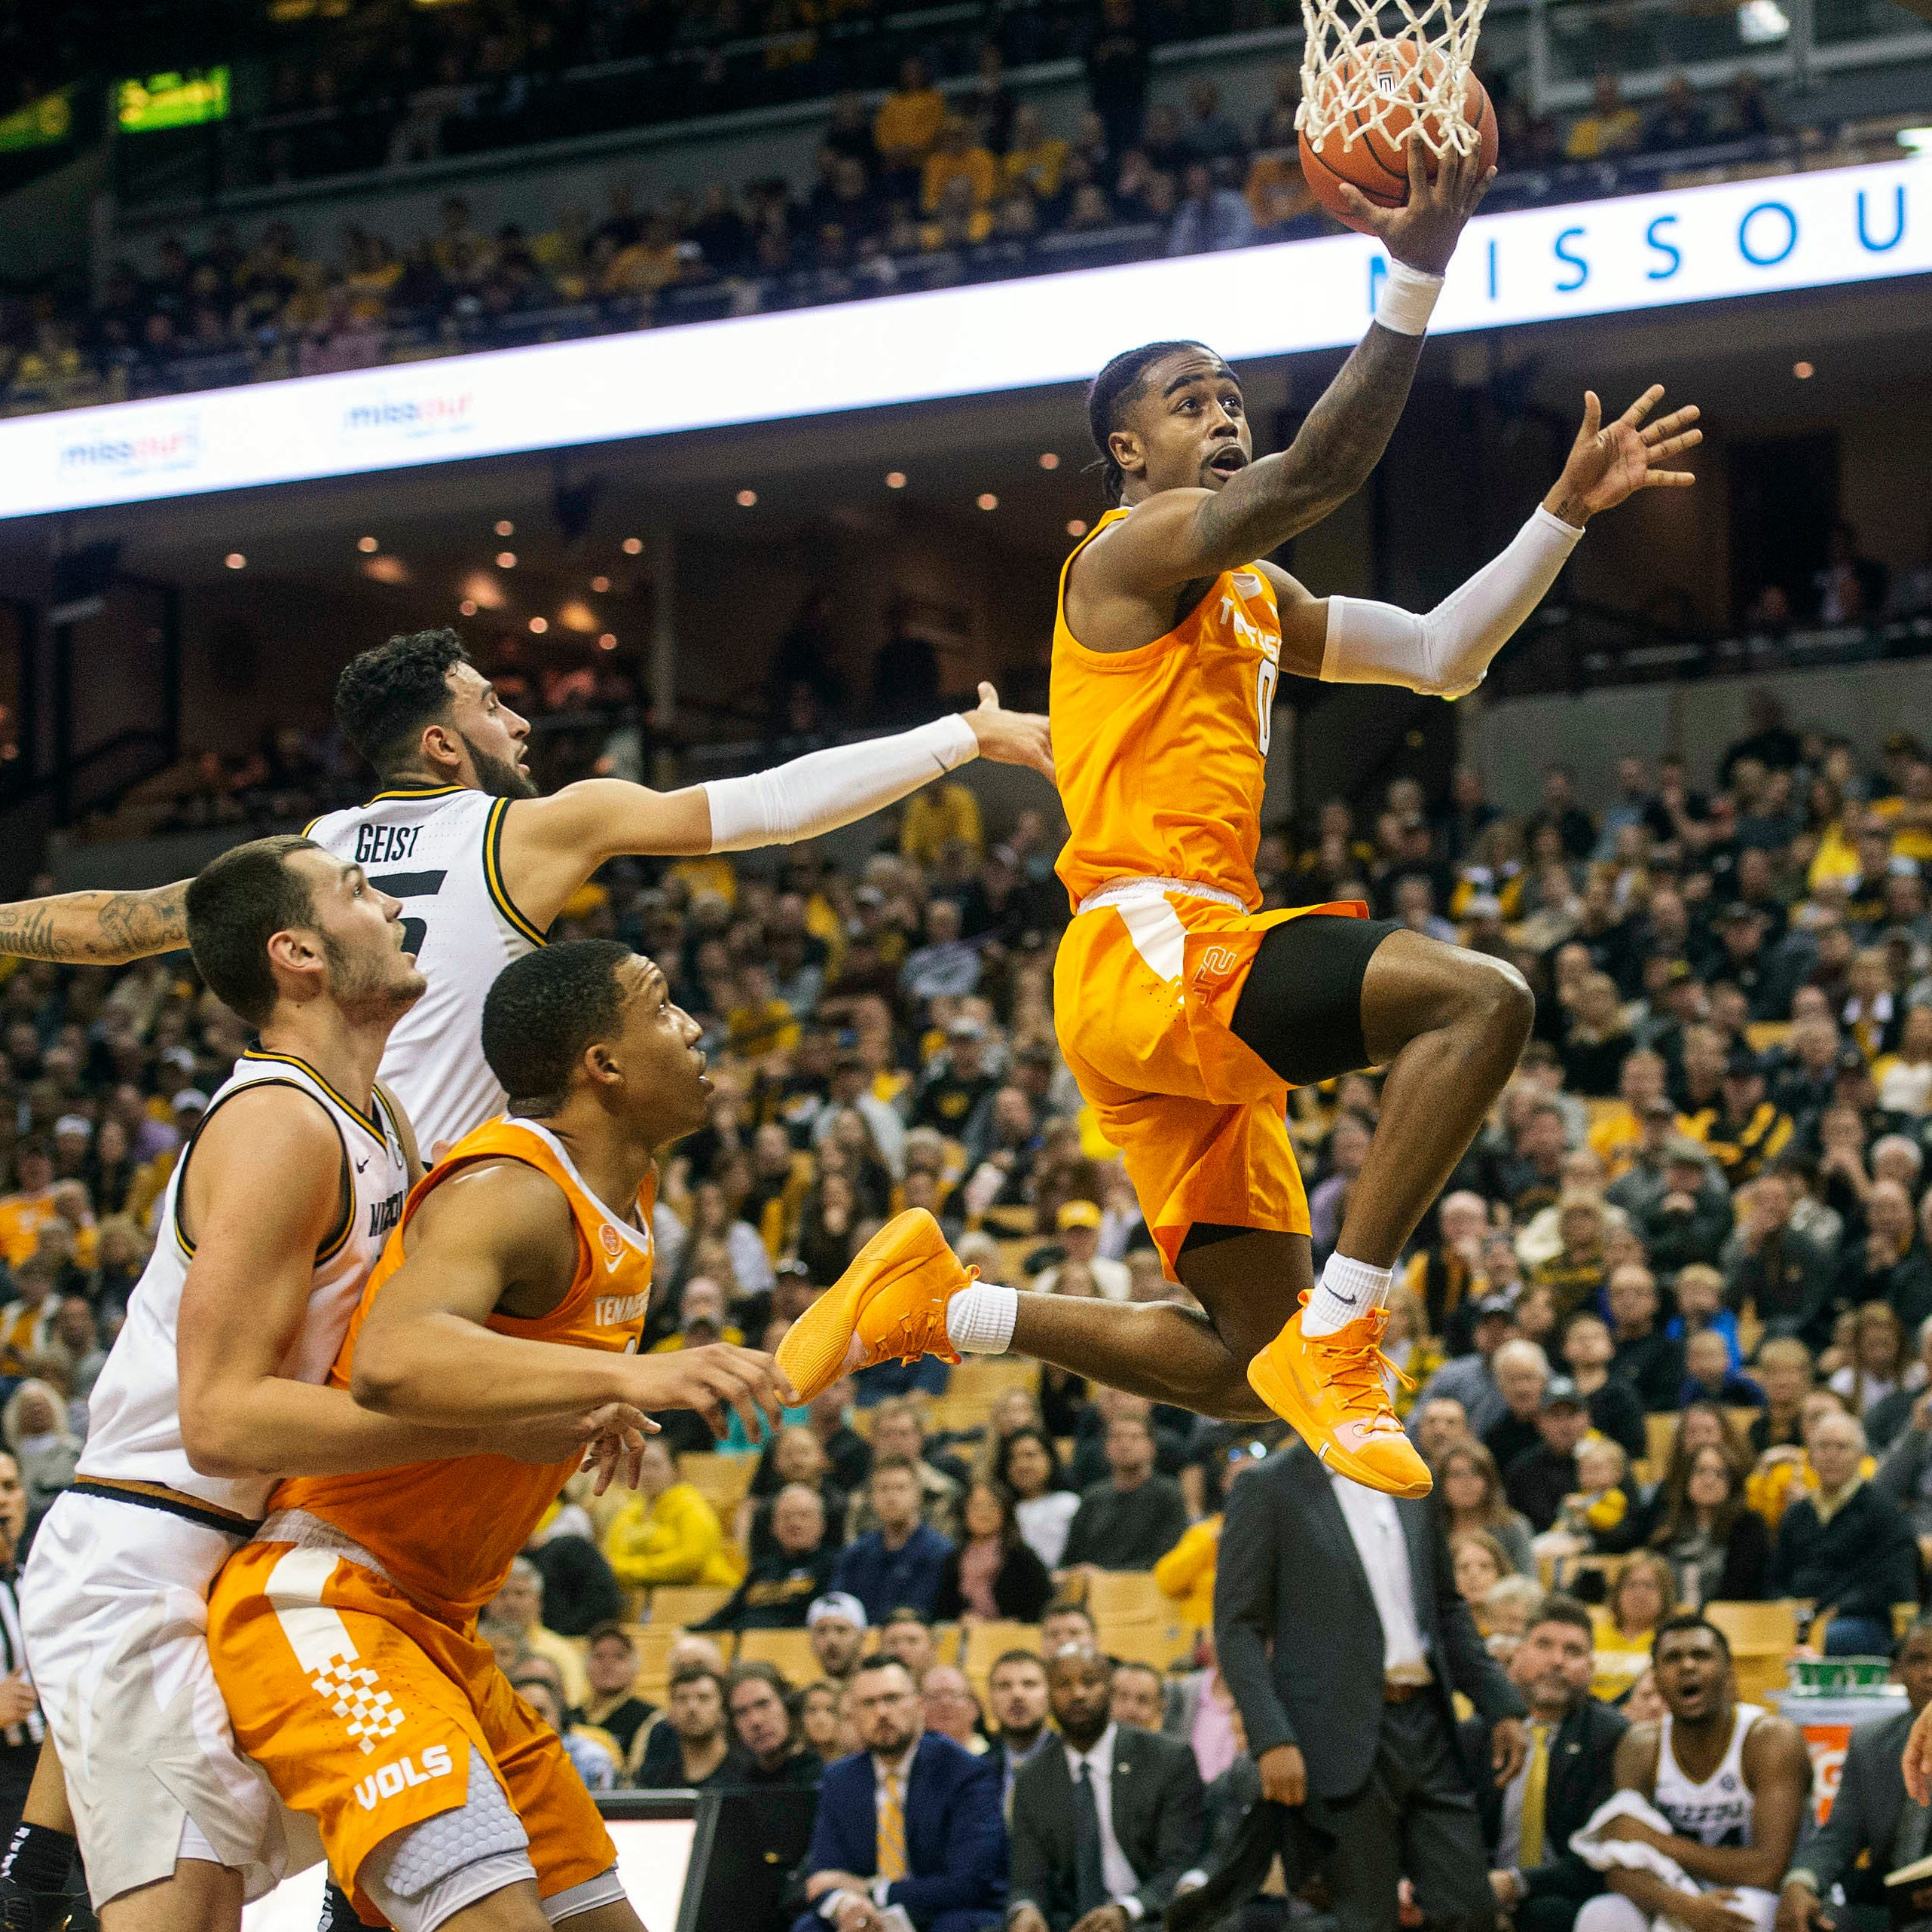 Mike Strange: UT Vols face SEC competition on road to March Madness; next up — Vanderbilt